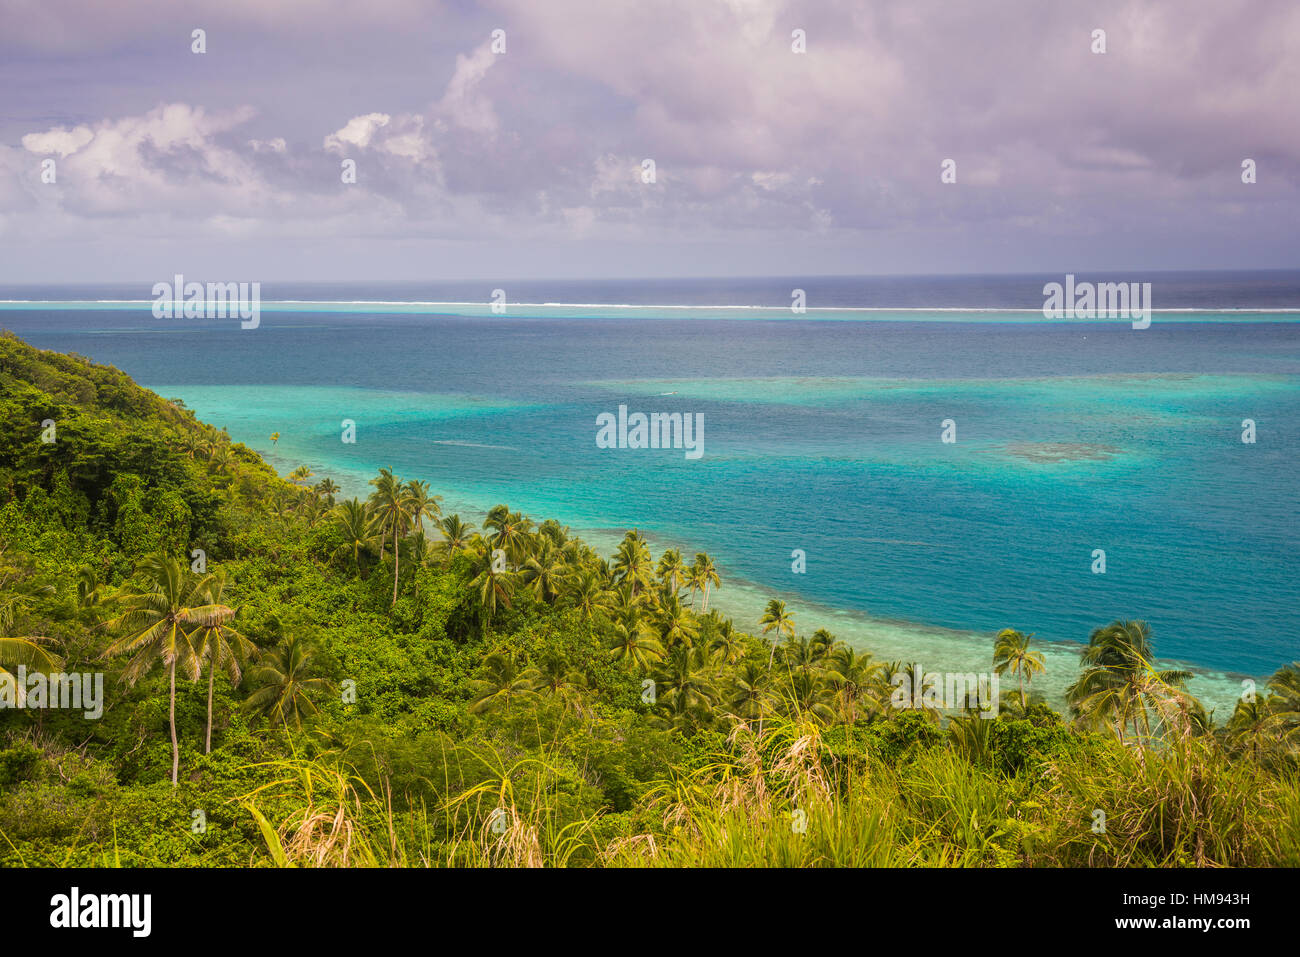 Overlook over the lagoon of Wallis, Wallis and Futuna, South Pacific, Pacific - Stock Image